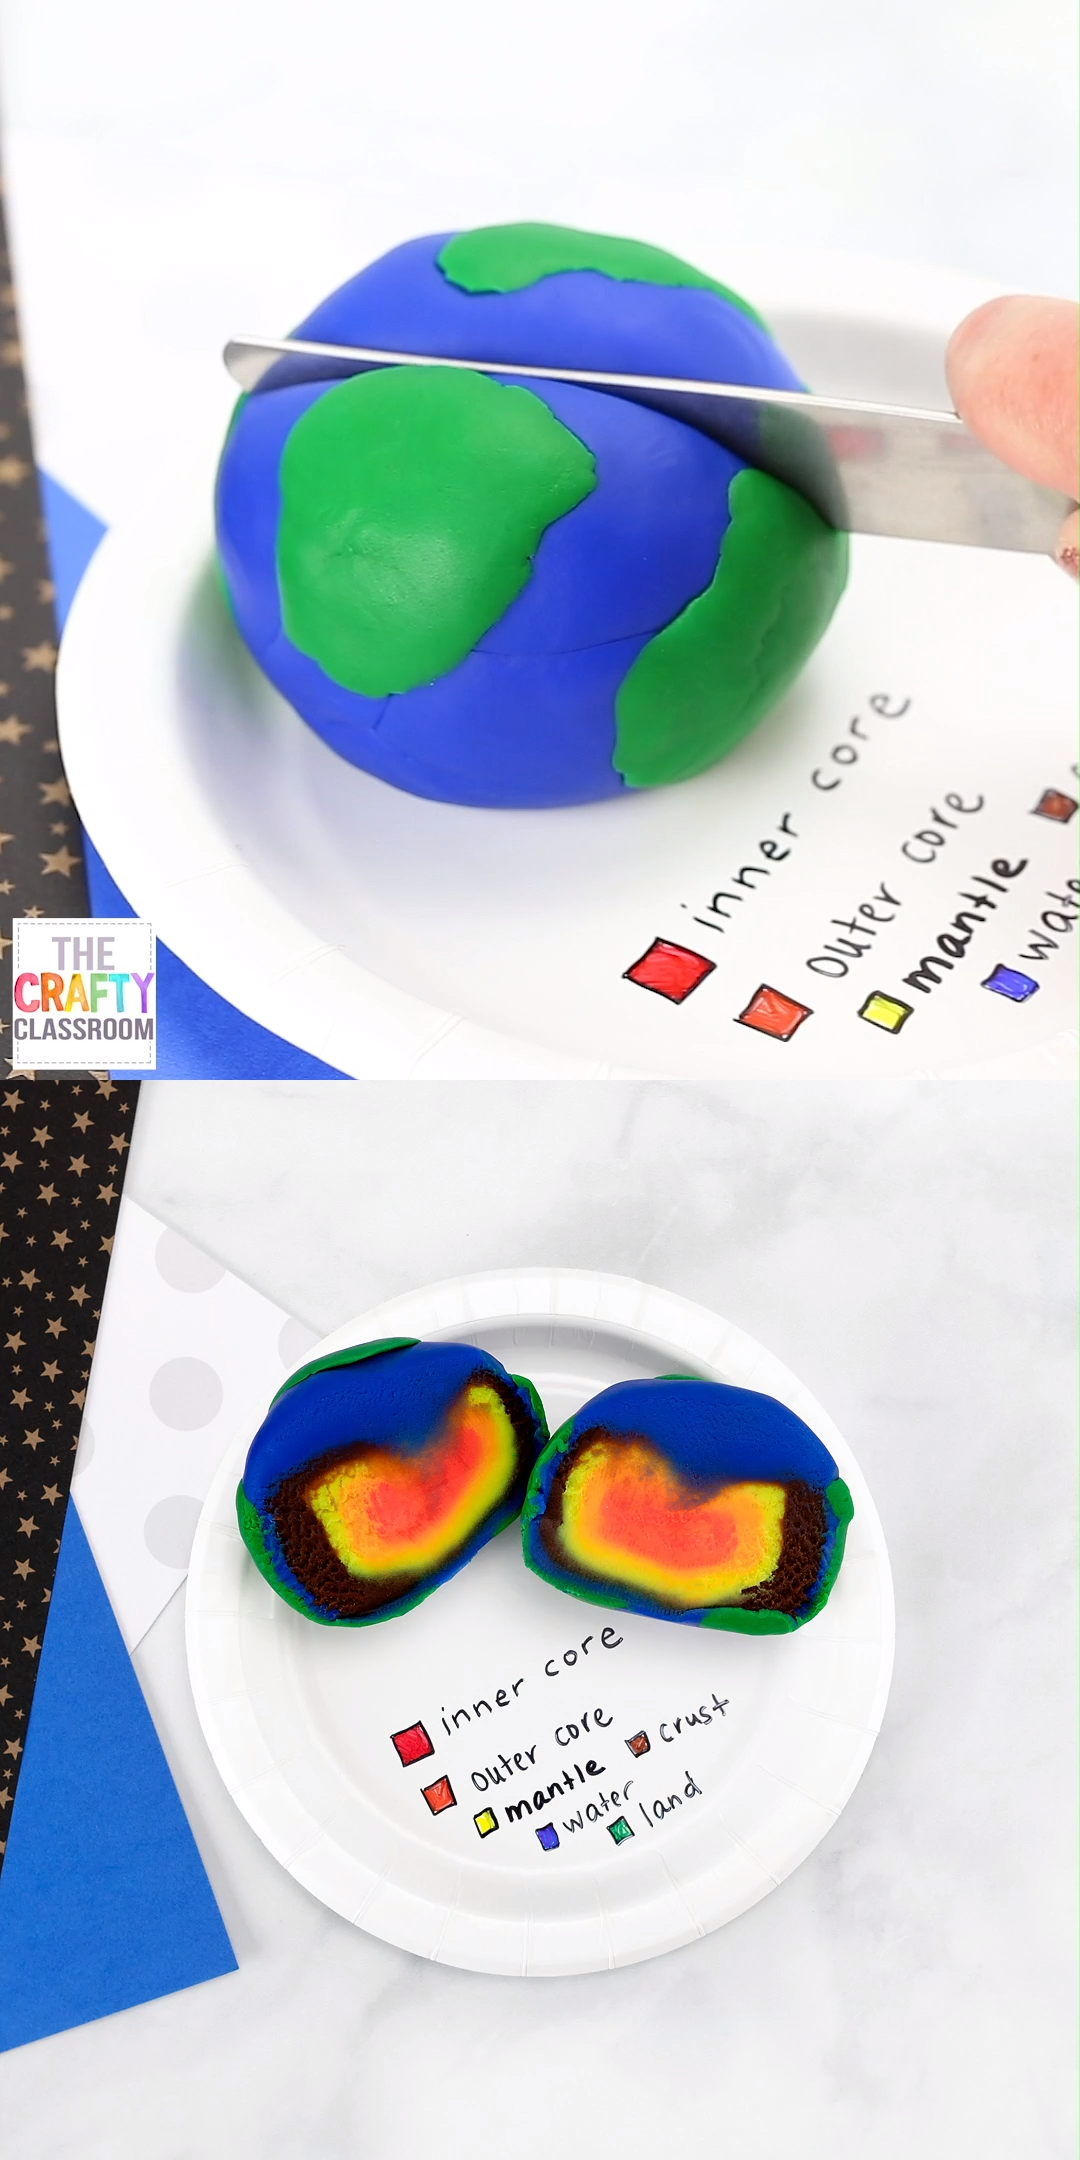 Is your student learning about the layers of the earth? Do you need some layers of the earth project ideas? This 3D model of the layers of the Earth is not only colorful and eye-catching, but it requires very little material and it's simple for even the youngest of science students to create! Includes follow up layers of the earth worksheets, labeling diagram, cross section, 3-part cards, and science journal pages. Everything your student needs to create an amazing science project!